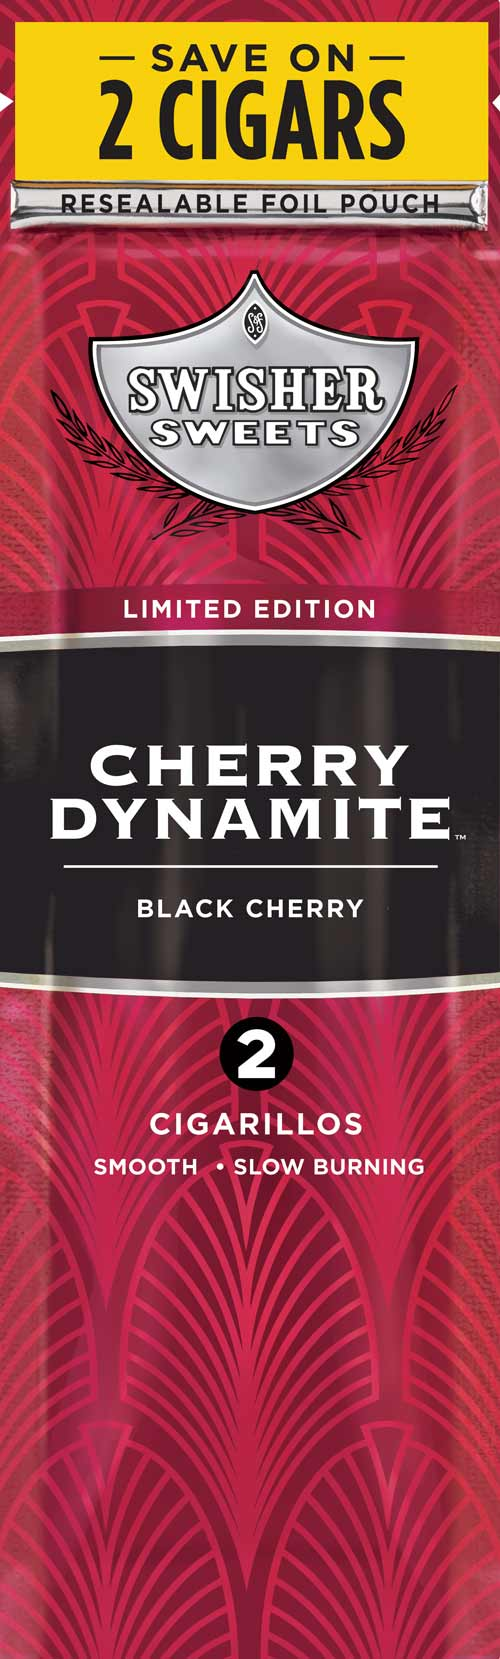 Limited Edition - Cherry Dynamite